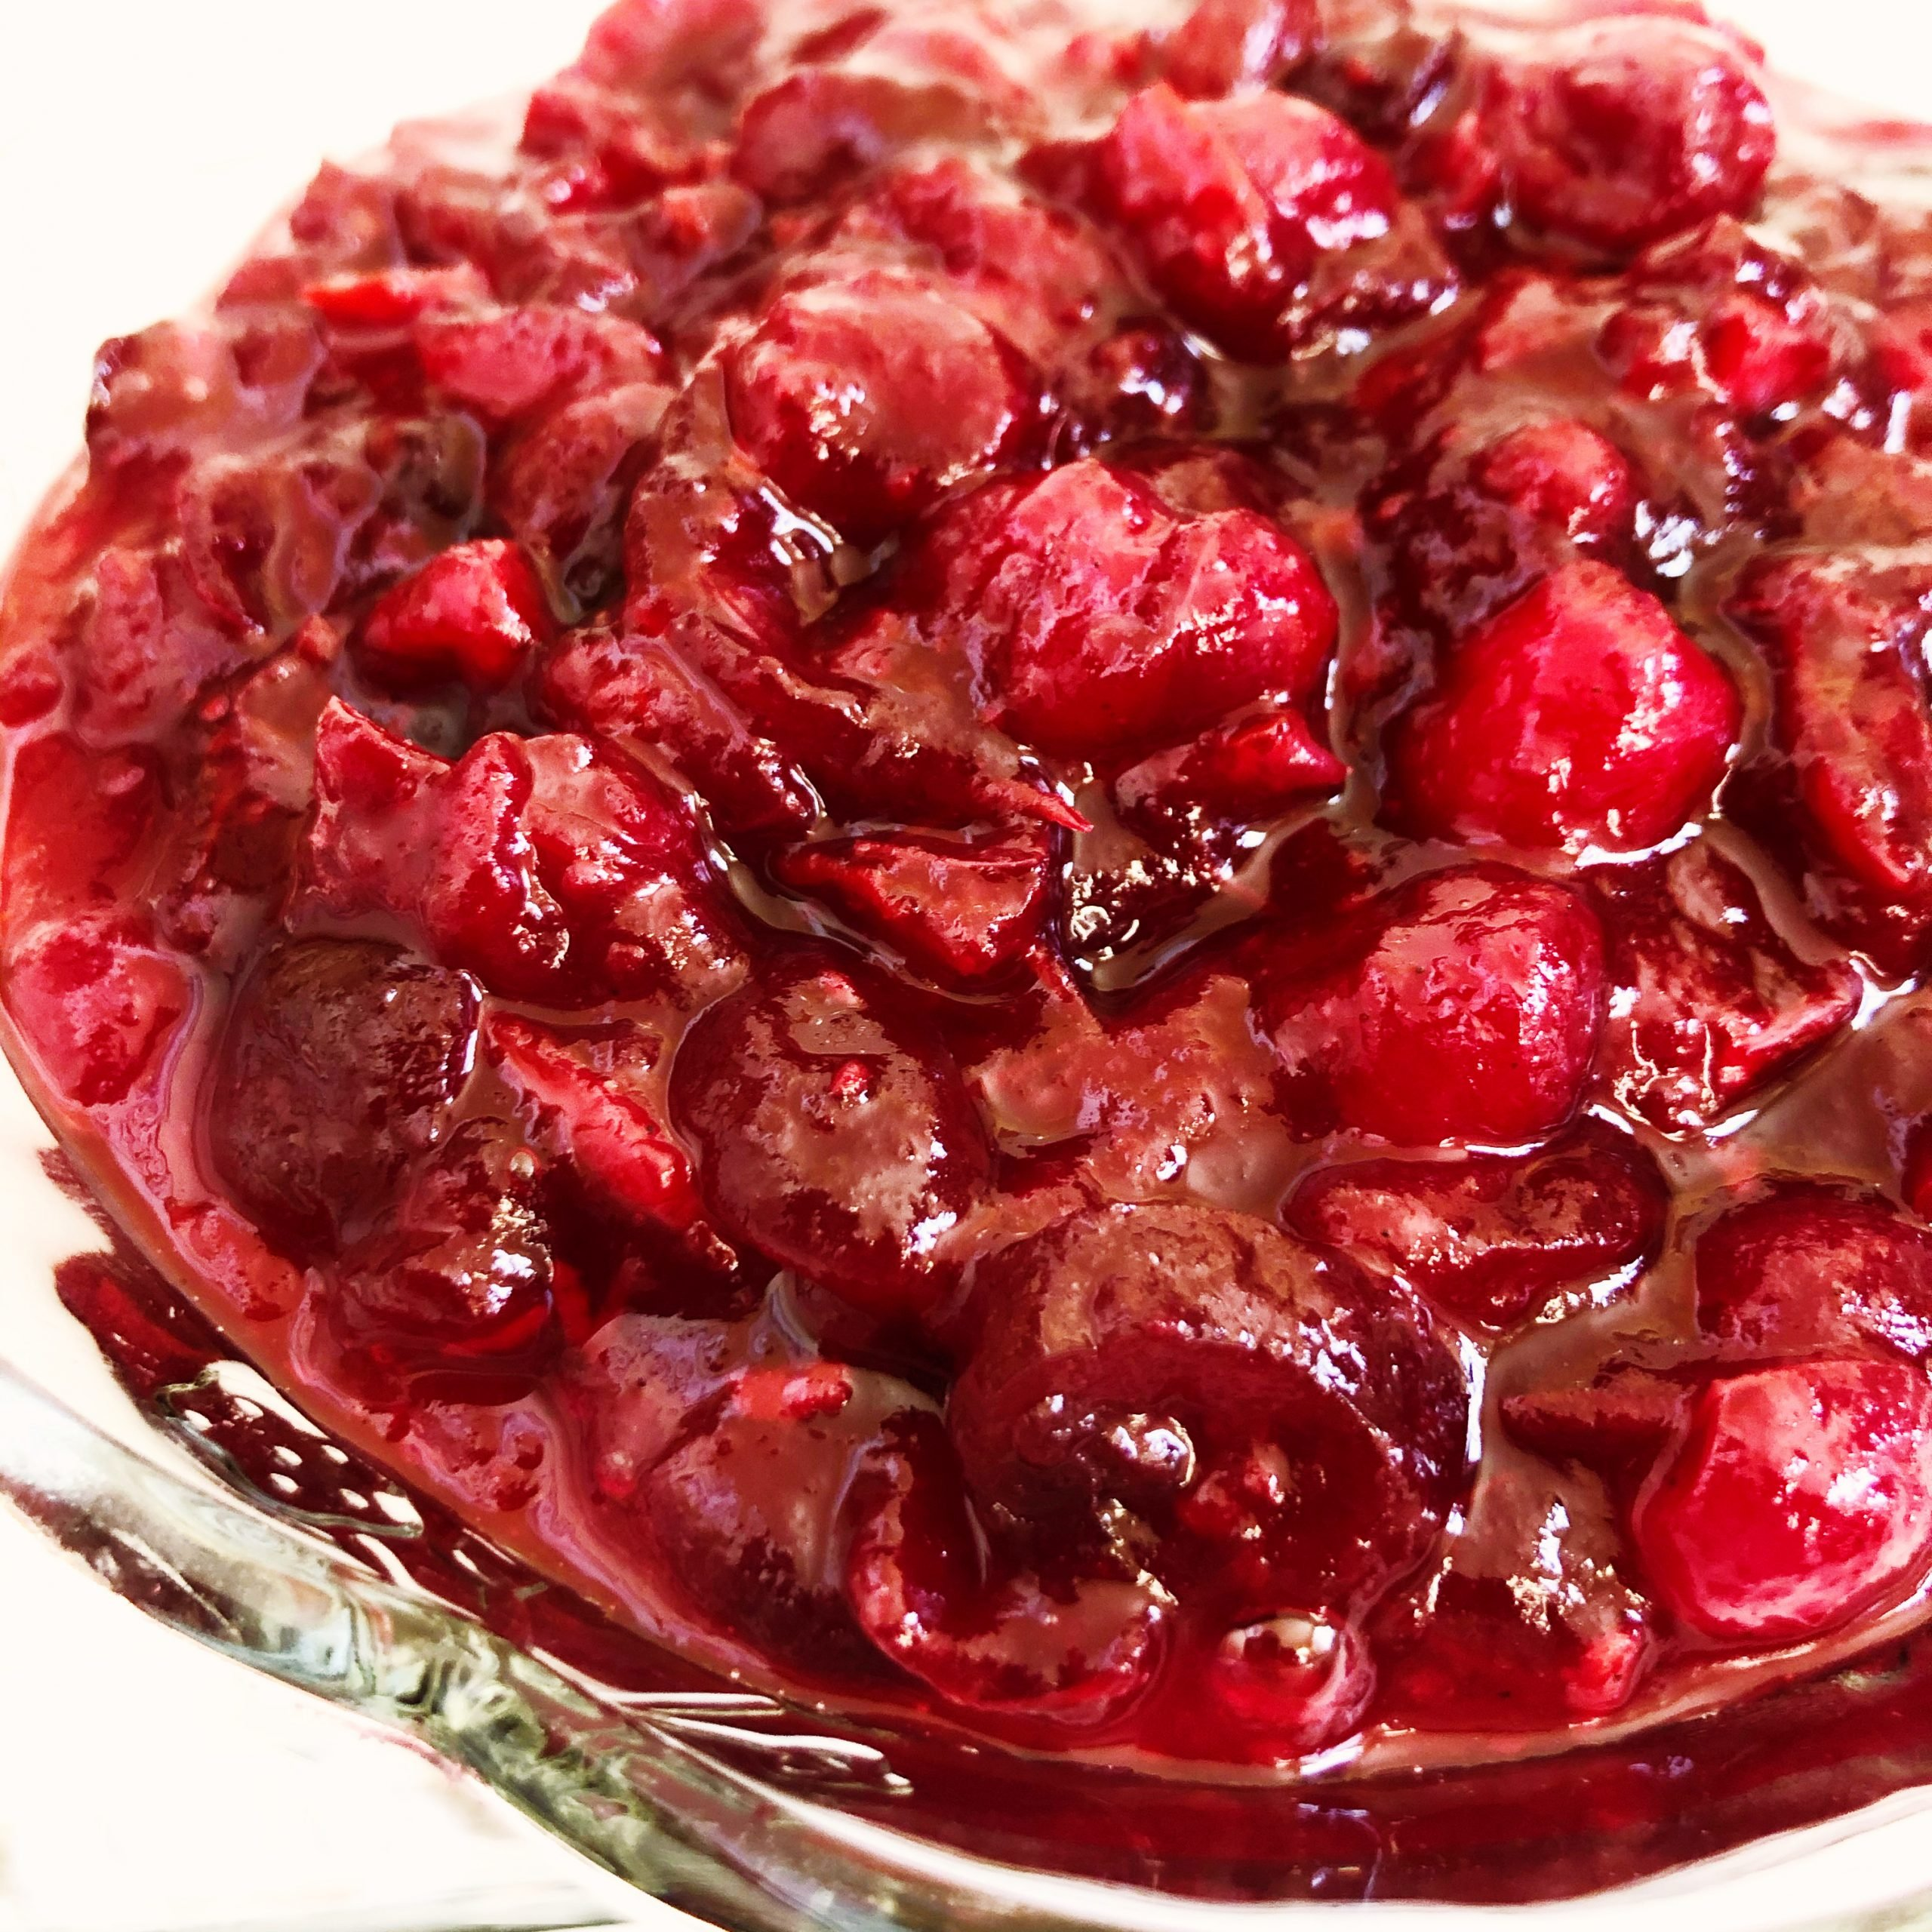 Thanksgiving Cranberry Sauce - A classic cranberry sauce, rich with the seasonal flavors of fresh cranberries, orange, and allspice; the perfect addition to your Thanksgiving menu! via @thiswifecooks